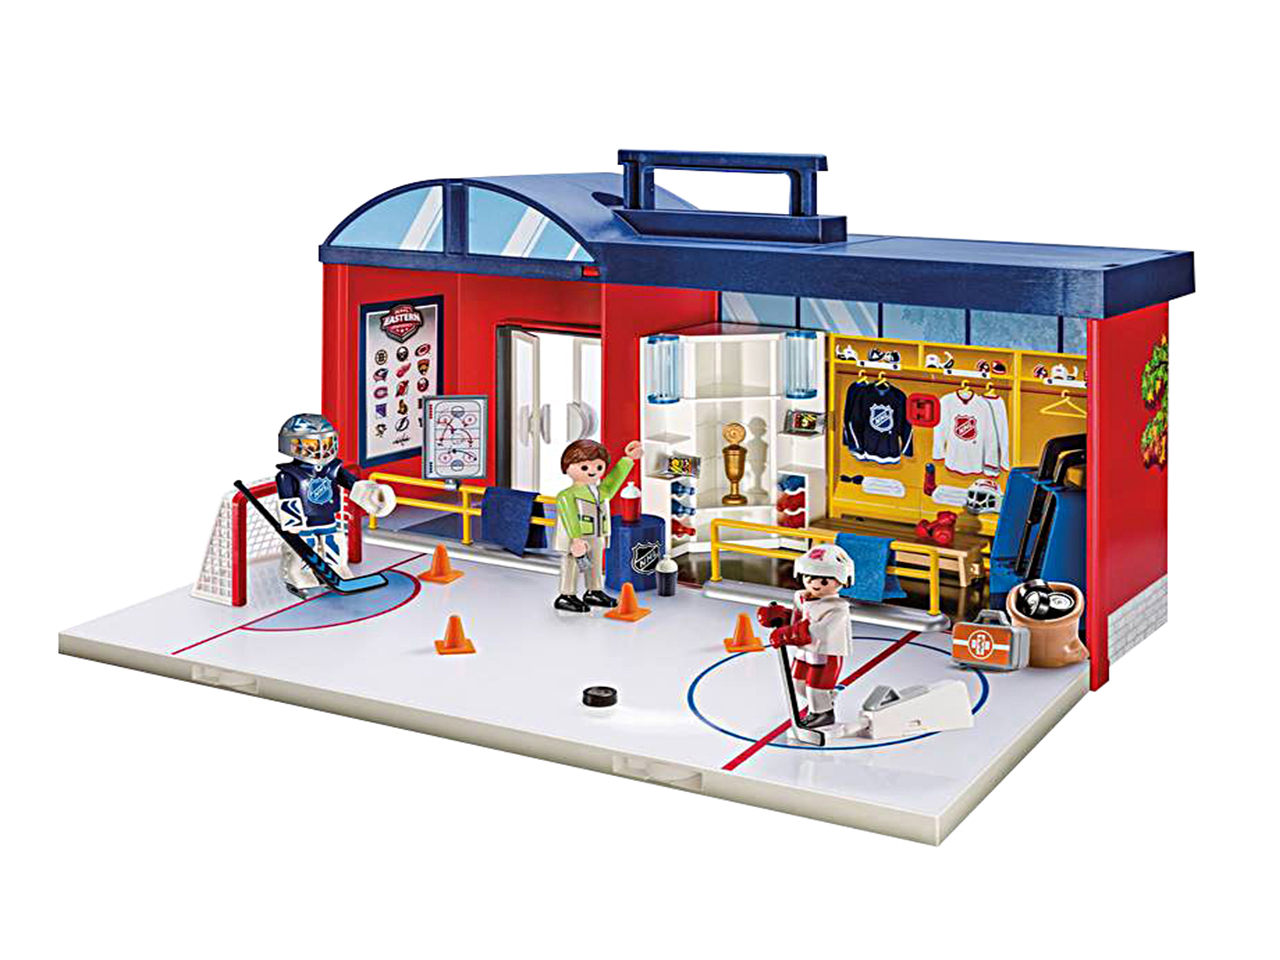 Playmobil NHL Take Along Arena: An NHL-themed playset including an ice rink and locker room